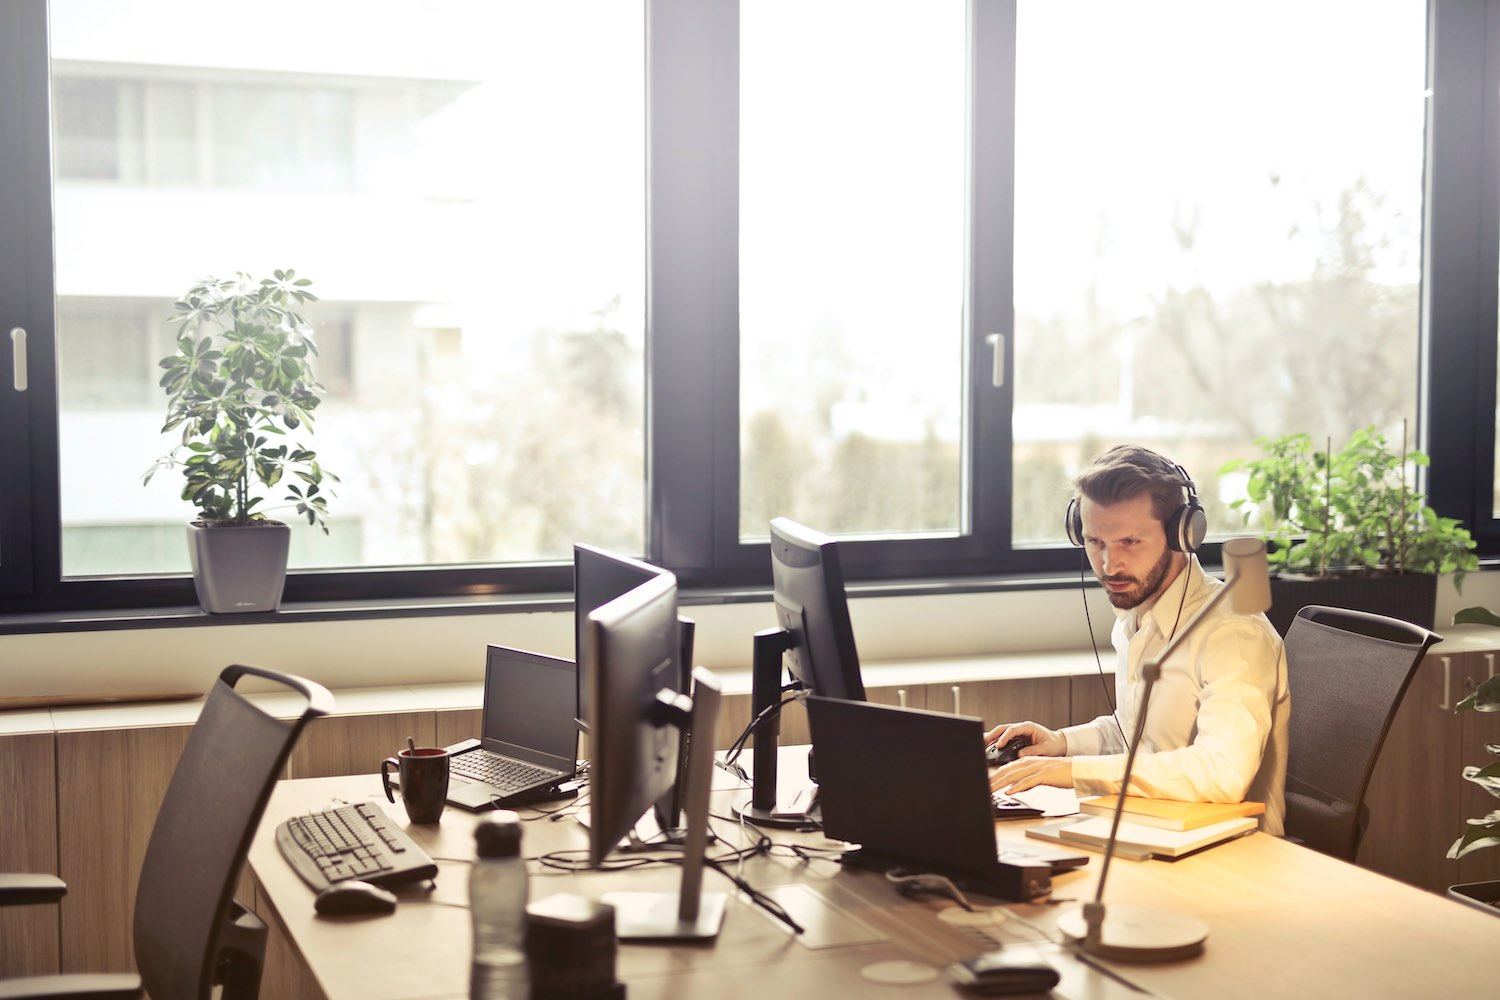 real estate prospecting - cold calling leads in an office